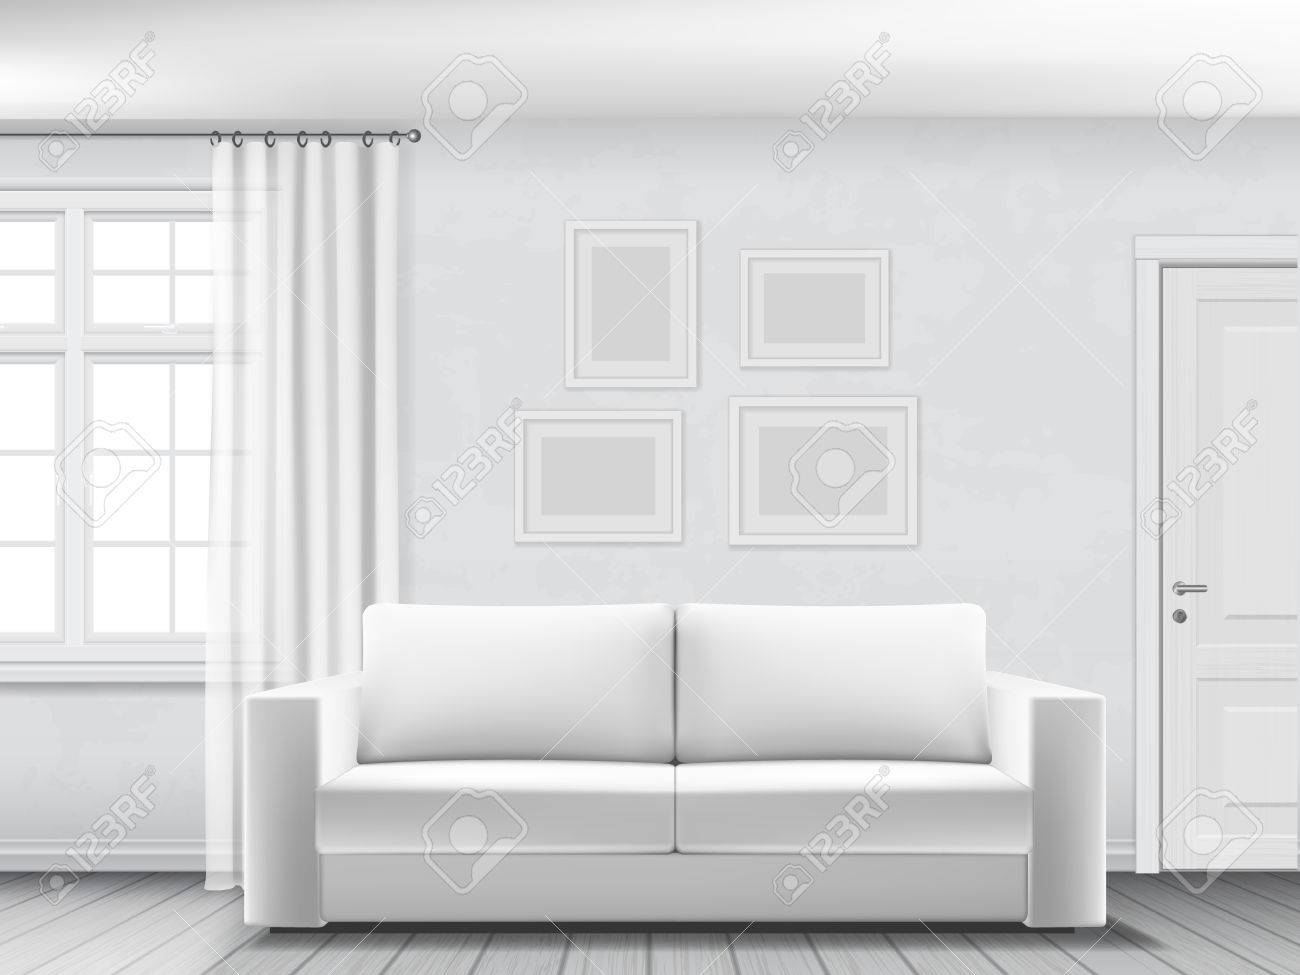 Realistic interior of living room with white sofa, window and door. - 61632947